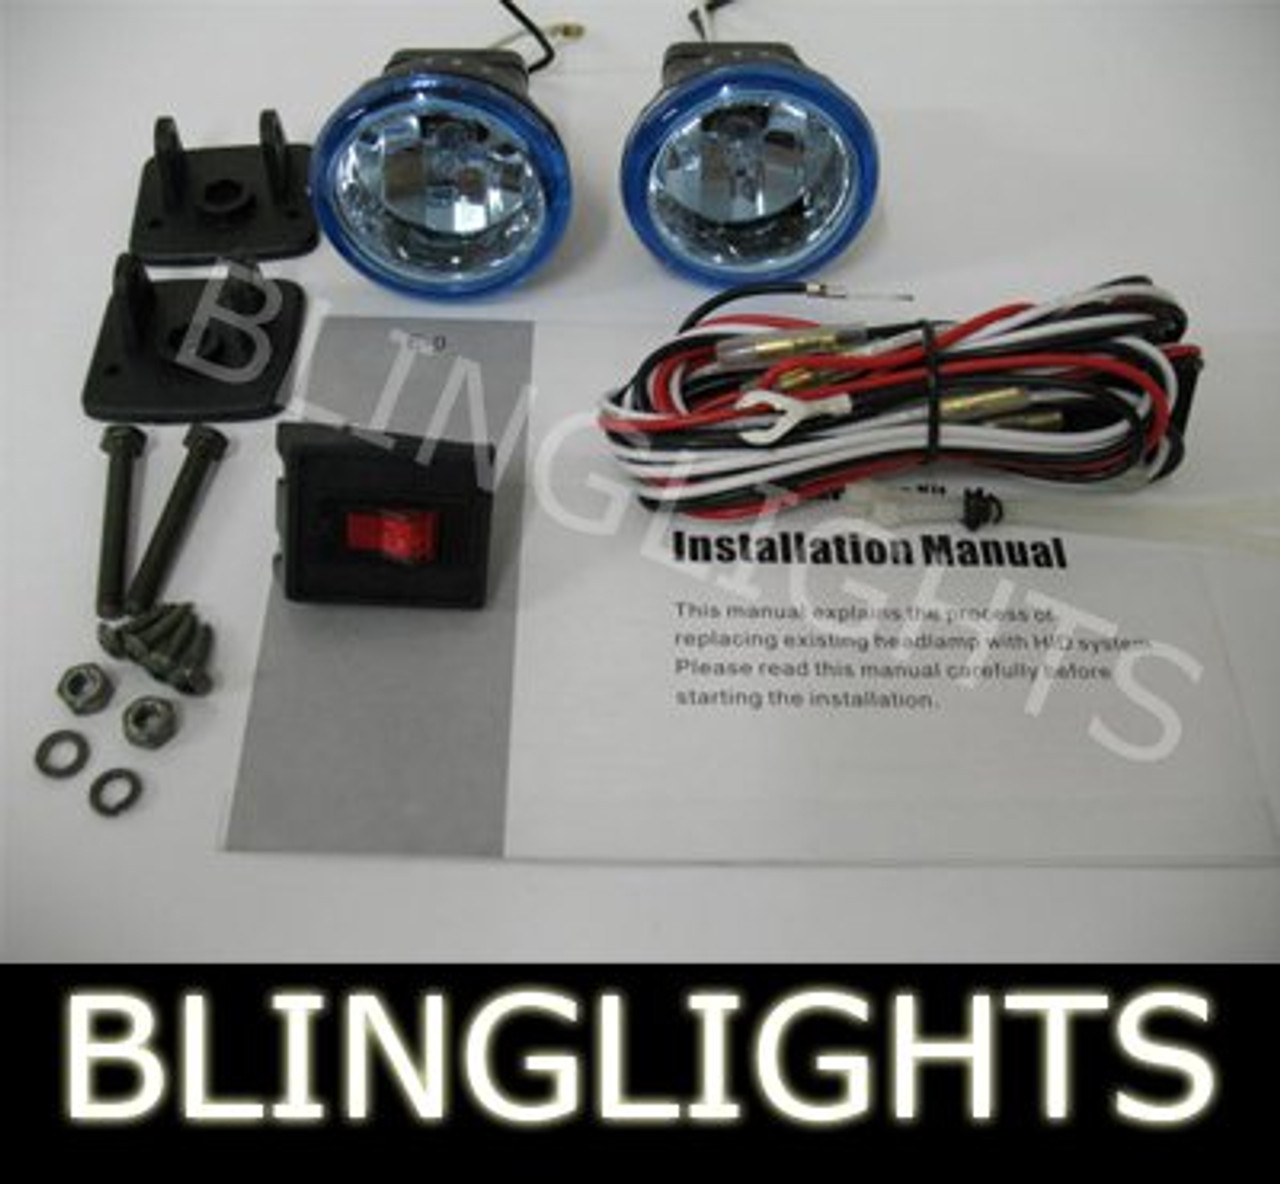 1987 1988 Honda Super Magna V45 VF750C Xenon Driving Lights Fog Lamps Foglamps Foglights Kit